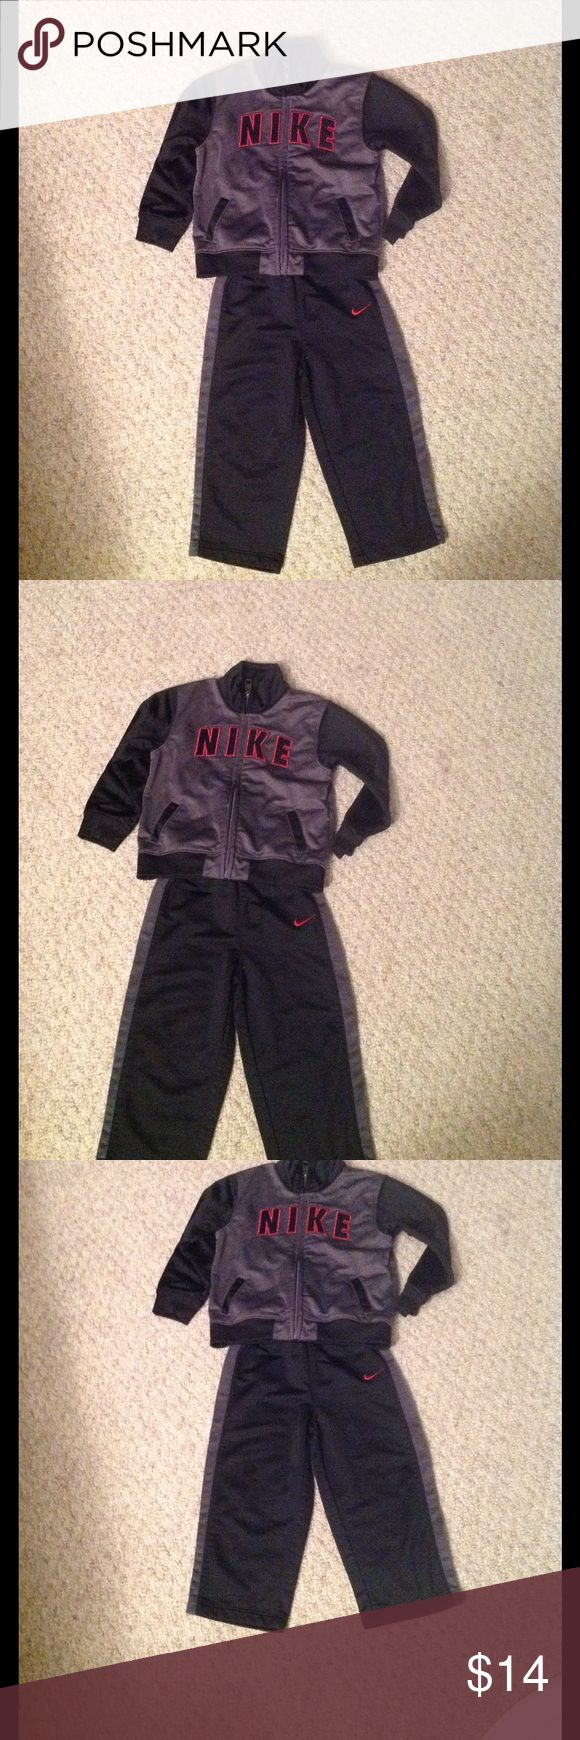 NIKE jogging suit Little boys NIKE Jogging suit. Size 24 months. Has been used, but no rips, tears or stains. Nike Matching Sets